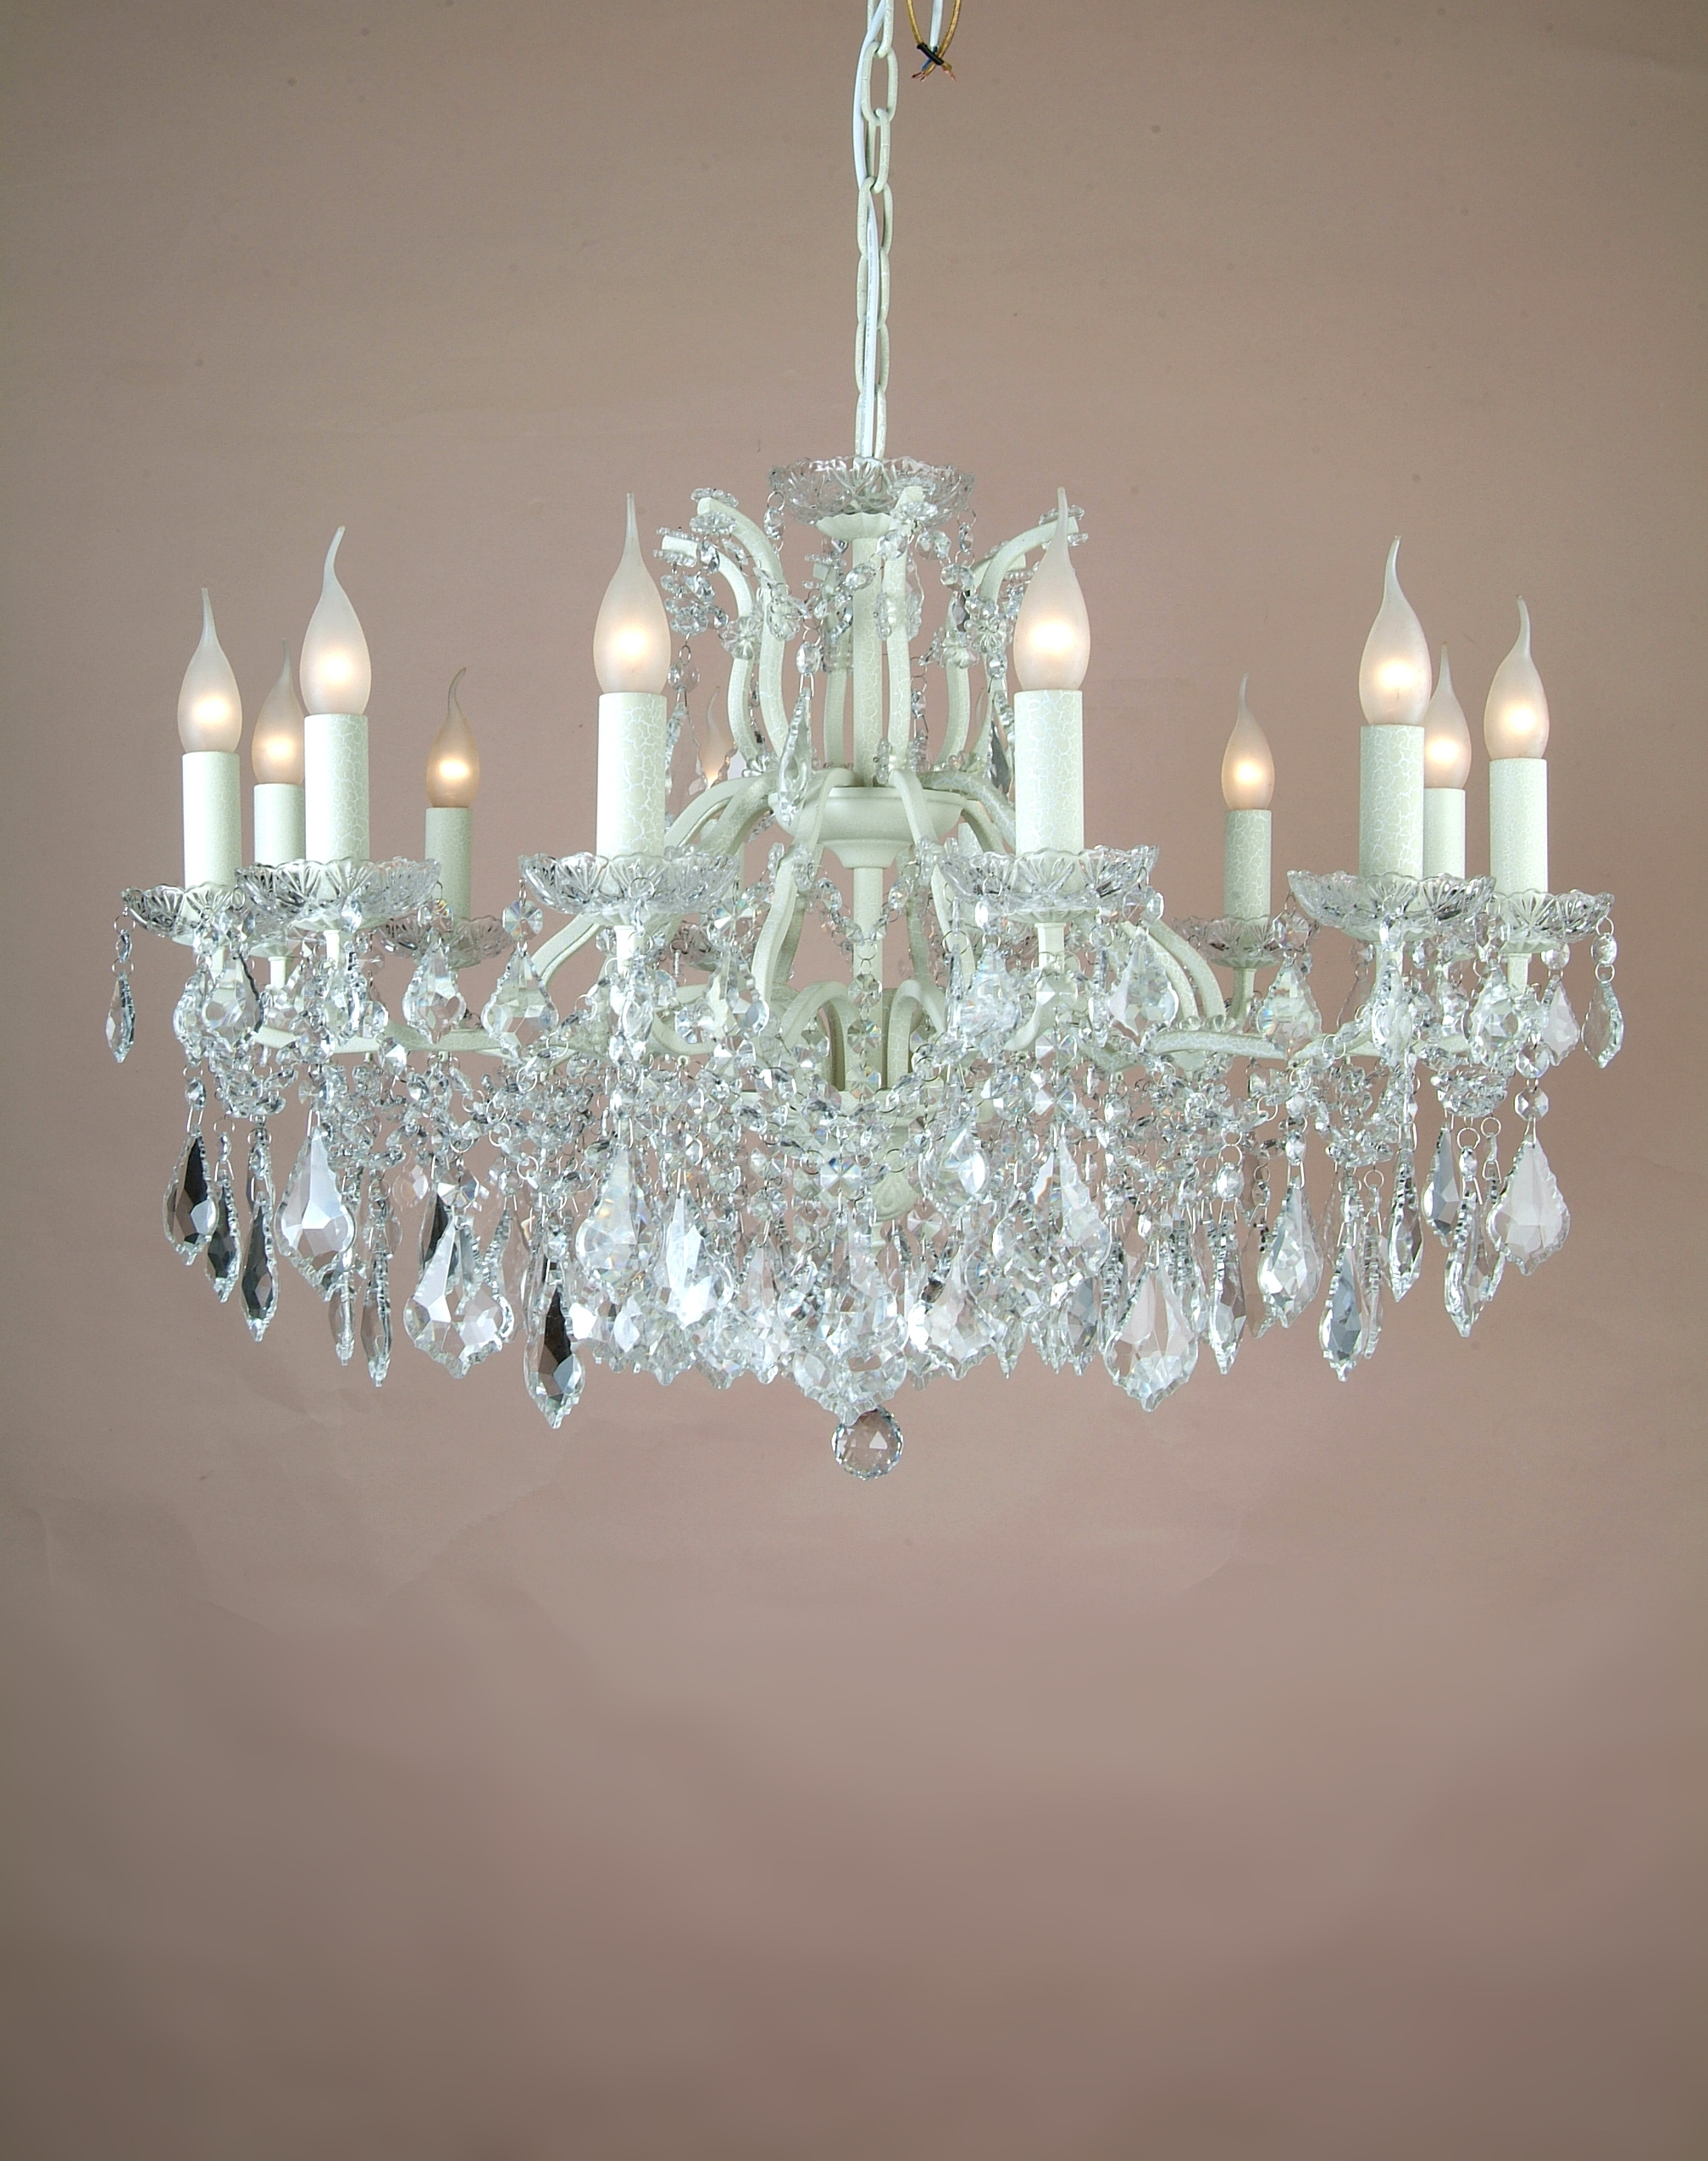 Simple Glass Chandelier In Favorite Chandeliers Glass – Pixball (View 12 of 20)